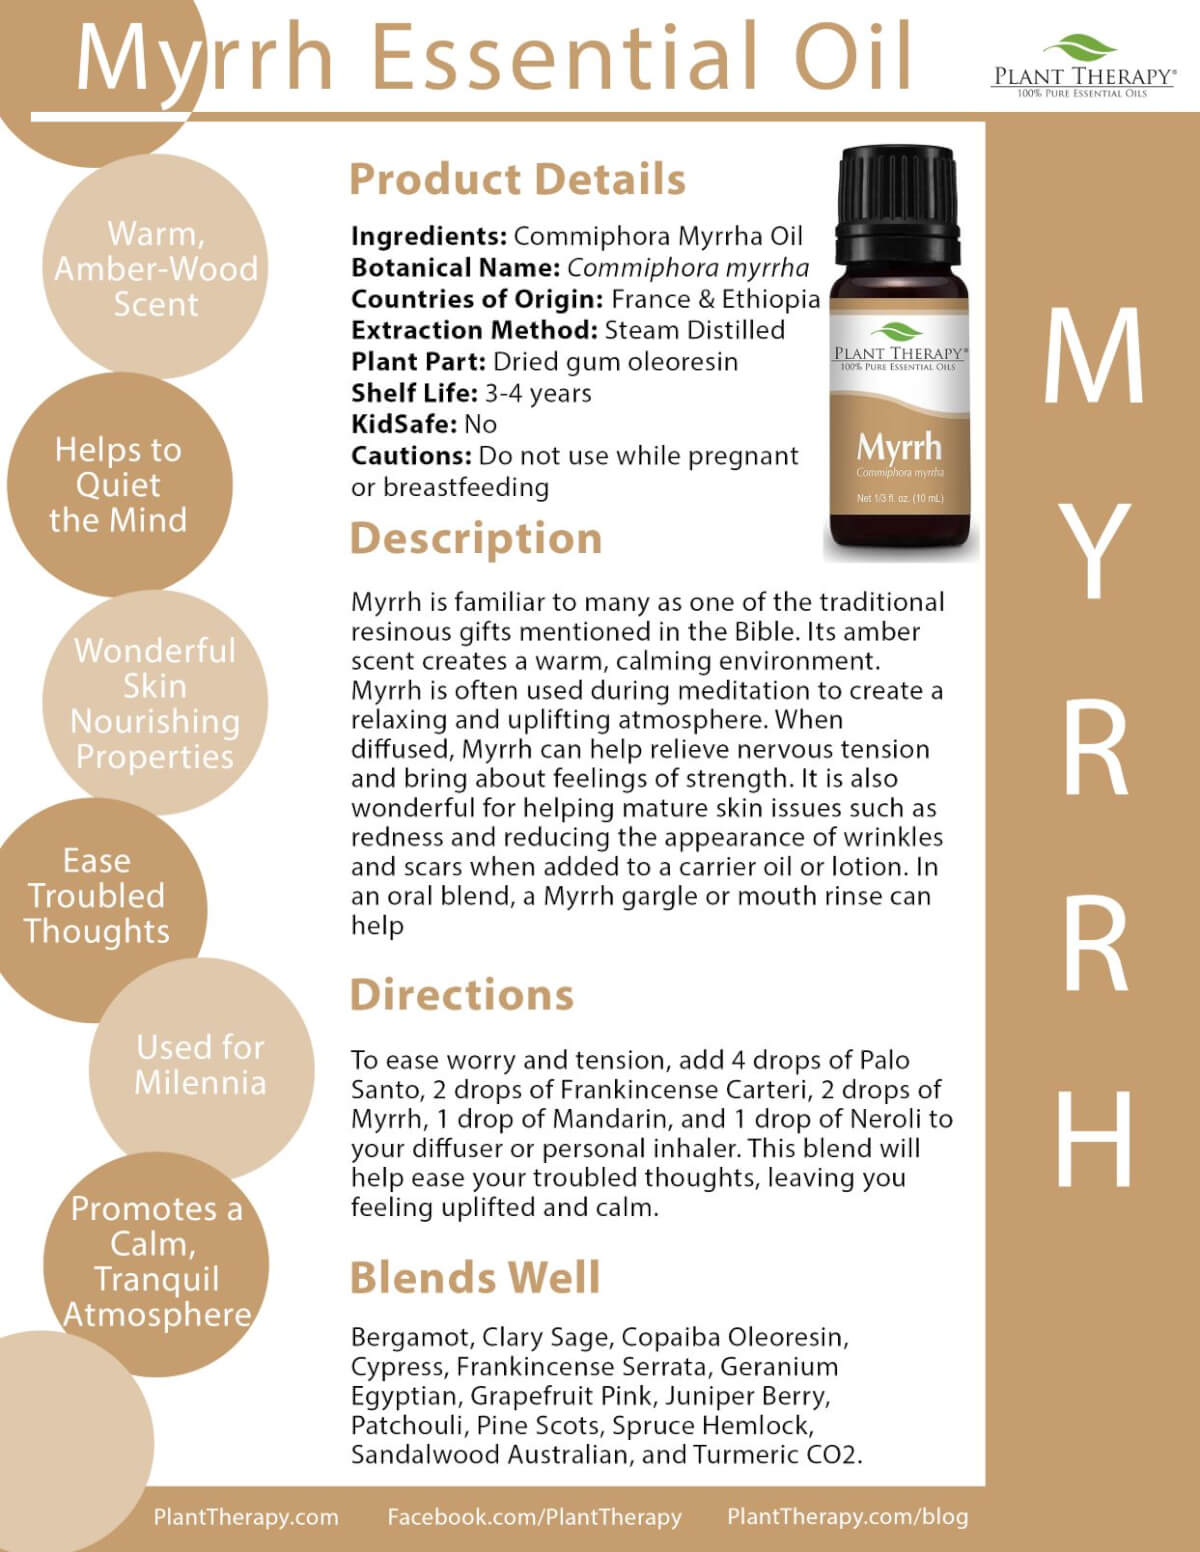 Myrrh Essential Oil from Plant Therapy